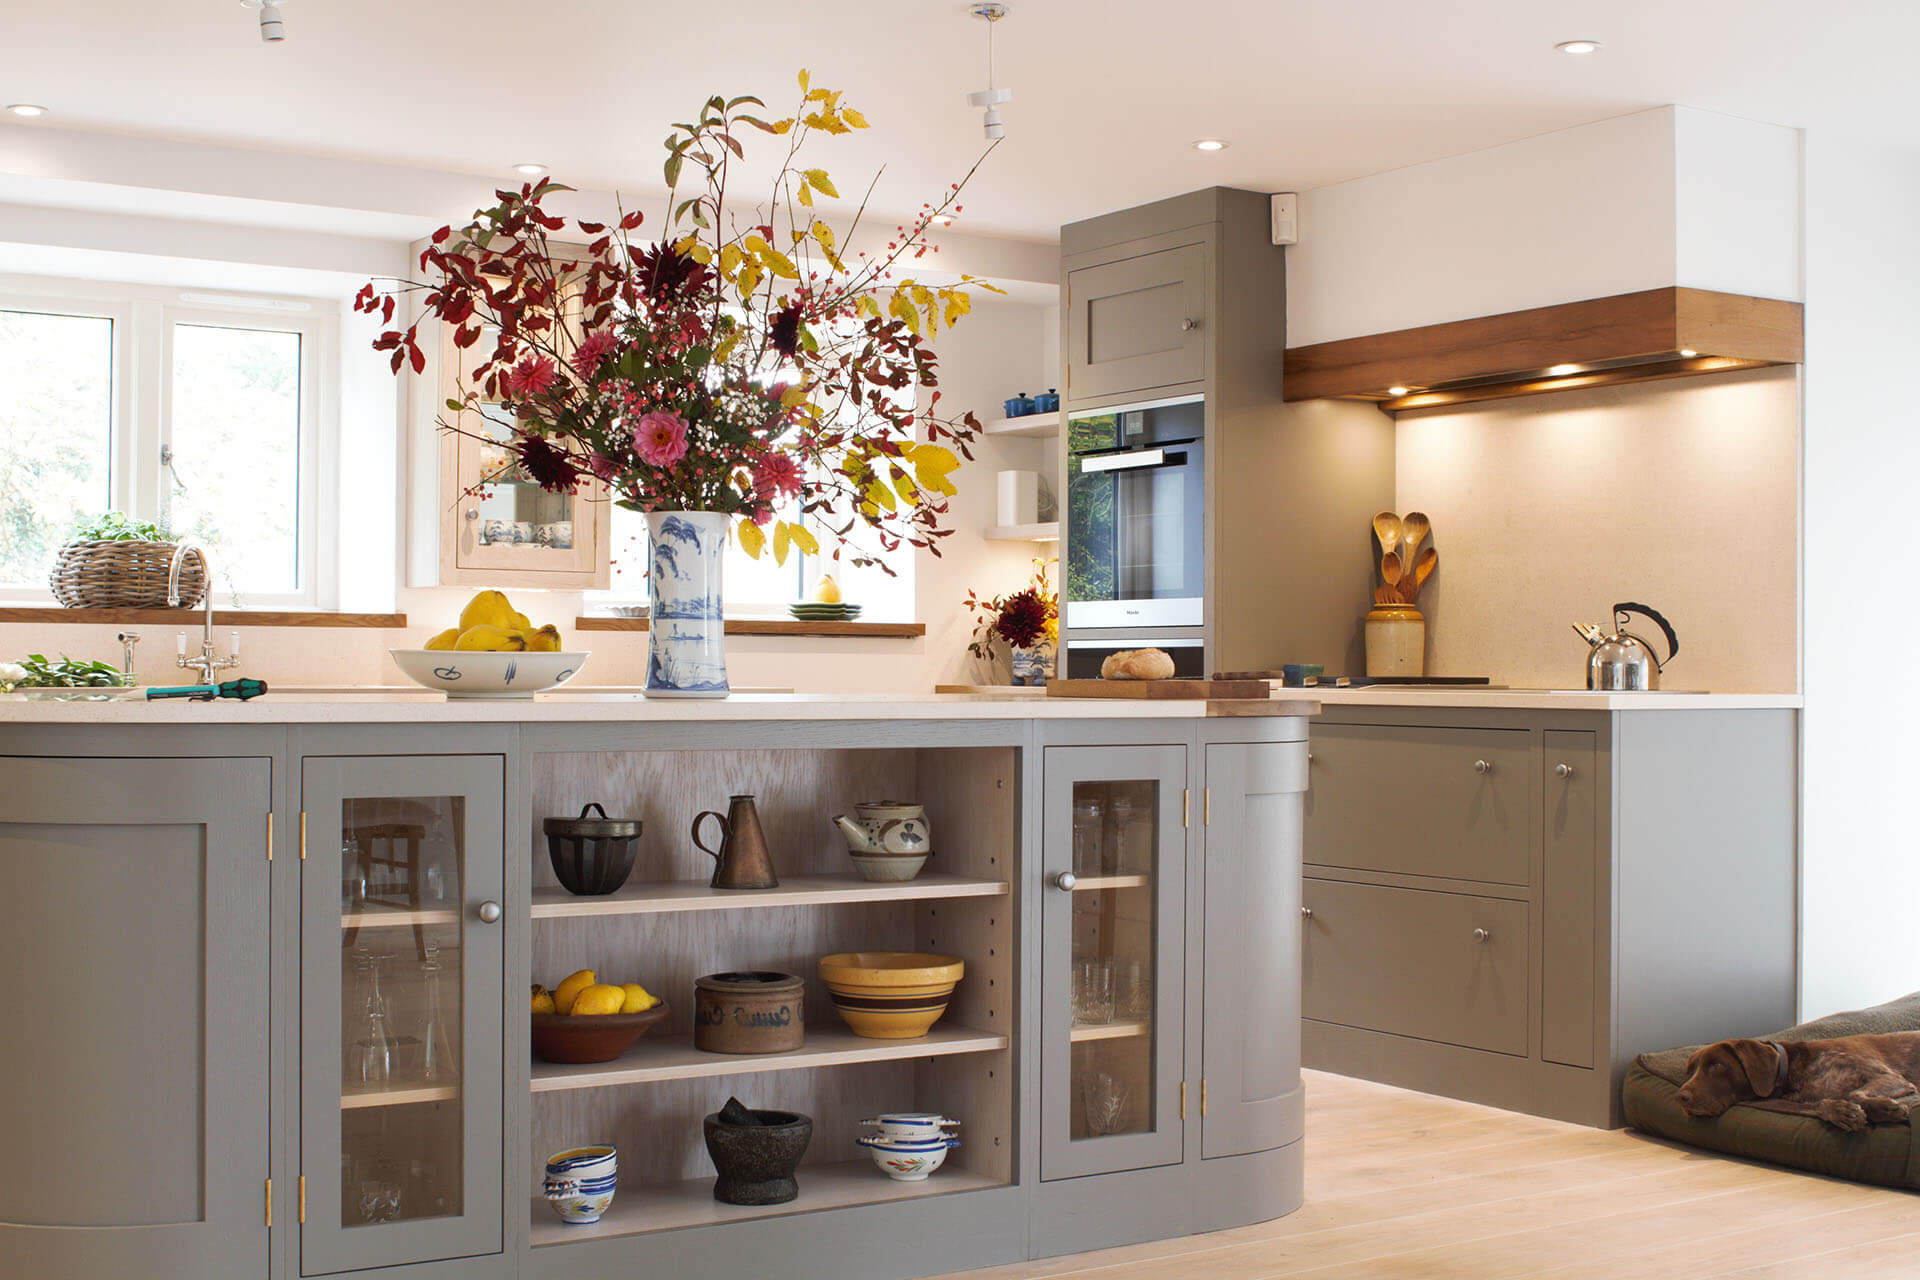 A Beautiful Open Plan Barn Conversion with large kitchen centre island and glazed display cabinets